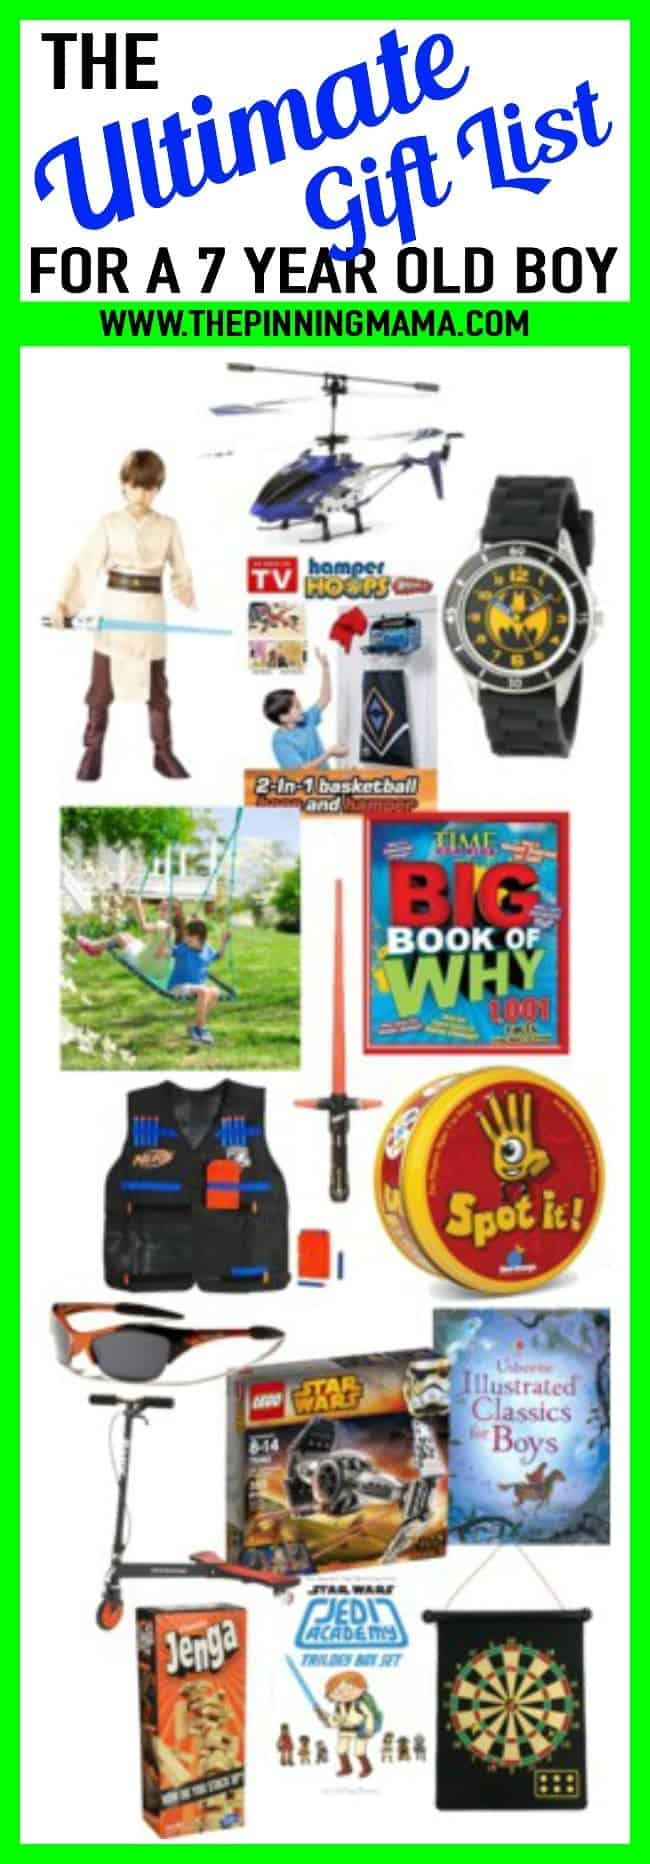 Ultimate list of gift ideas for a 7 year old boy. Best ideas for birthday presents and Christmas presents including electronics, games, outdoor toys, sports, books etc